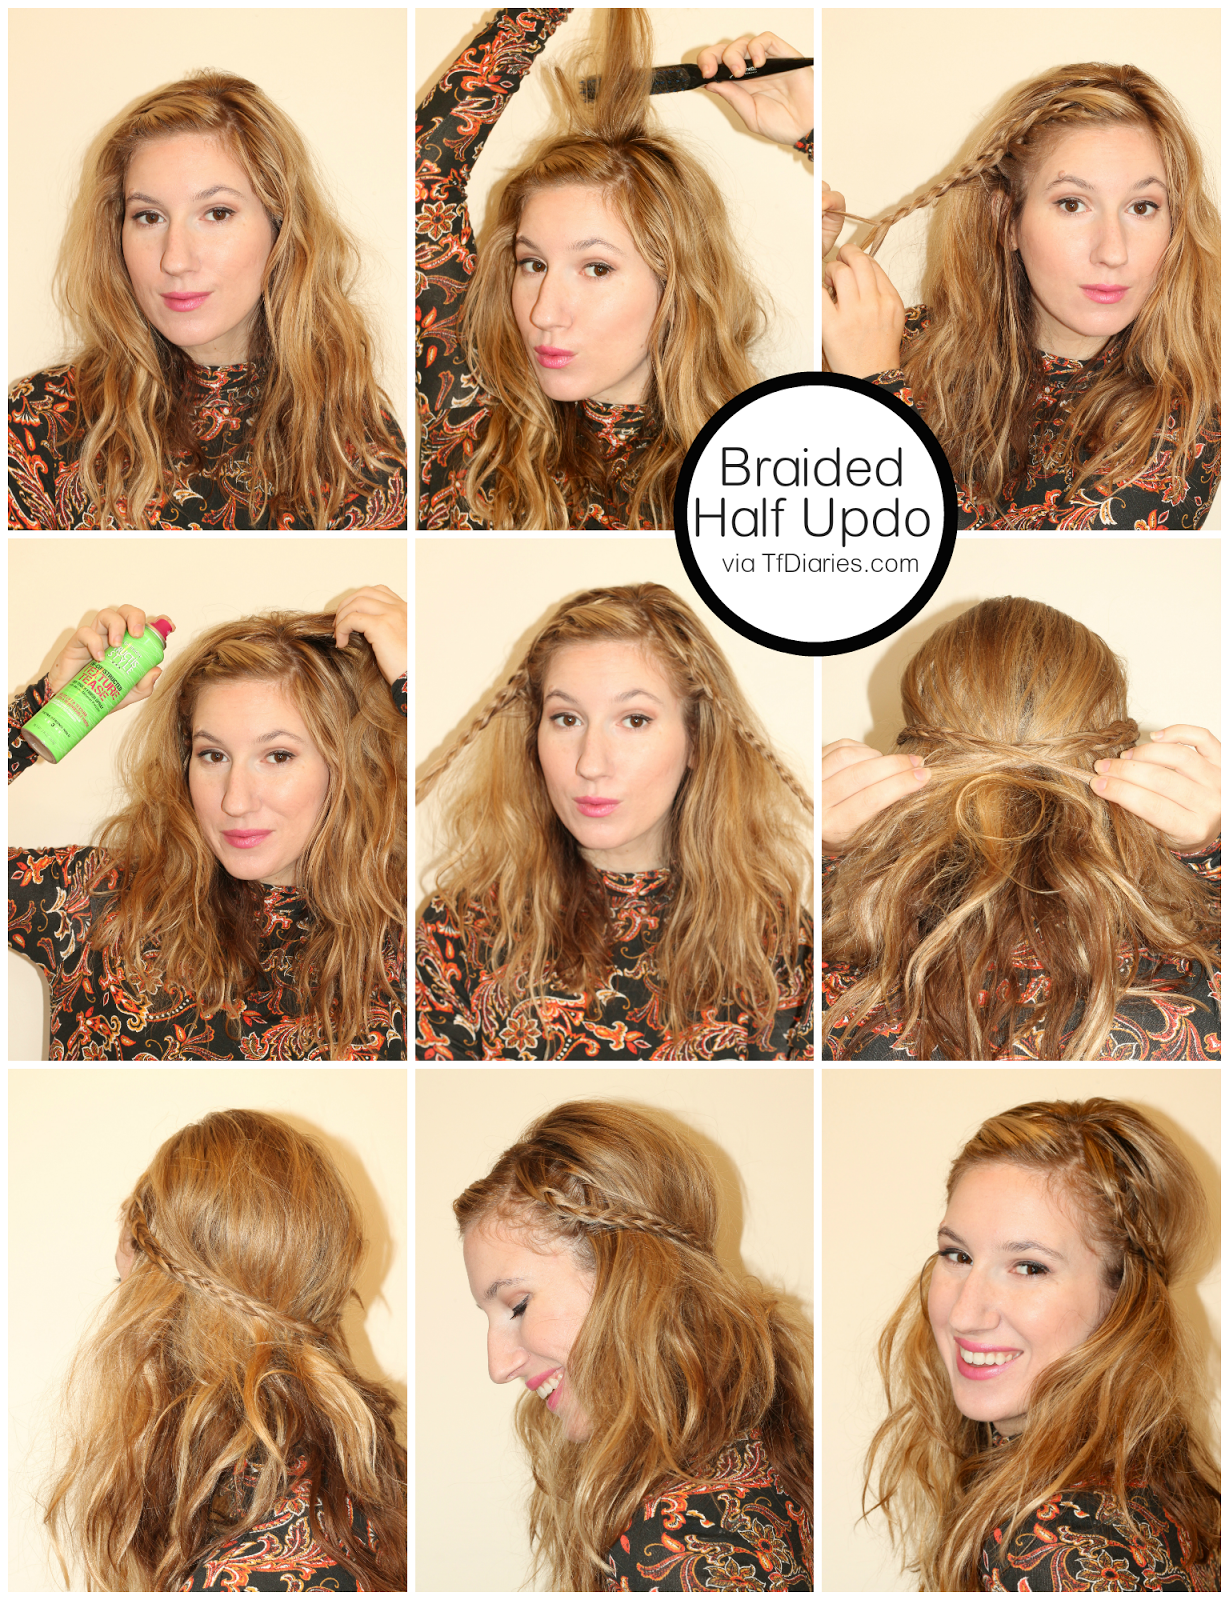 retro hair, dirty hair tutorial ideas, retro hair style, easy hair styles, tfdiaries, megan zietz, hair, trendy, fall 2014 hair